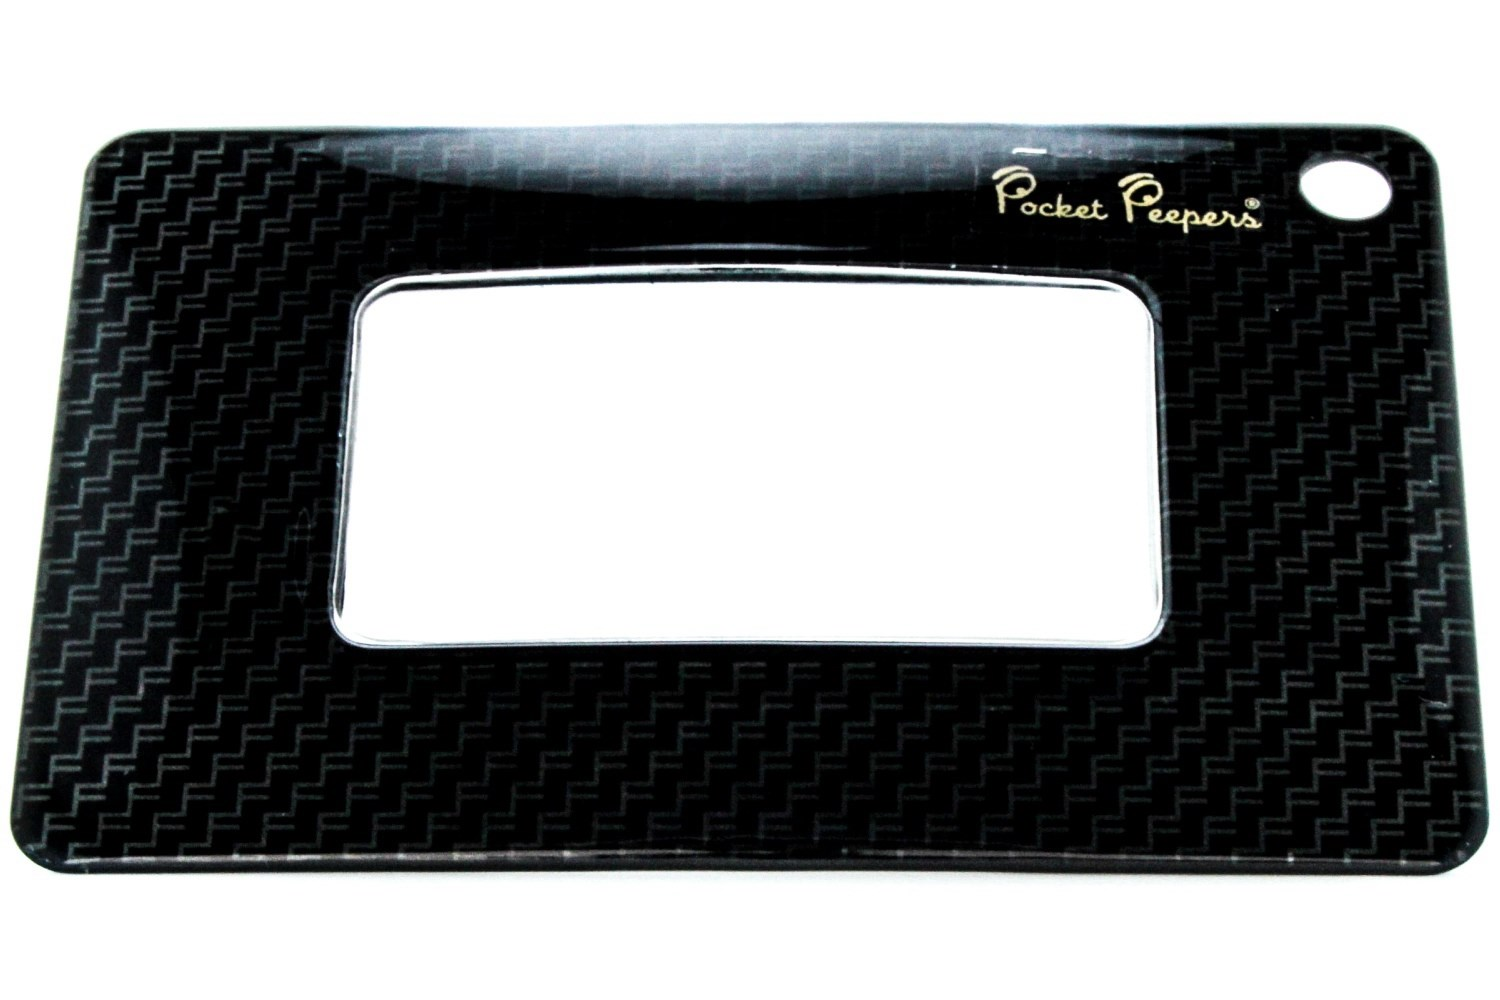 Pocket Peepers Reading Lens